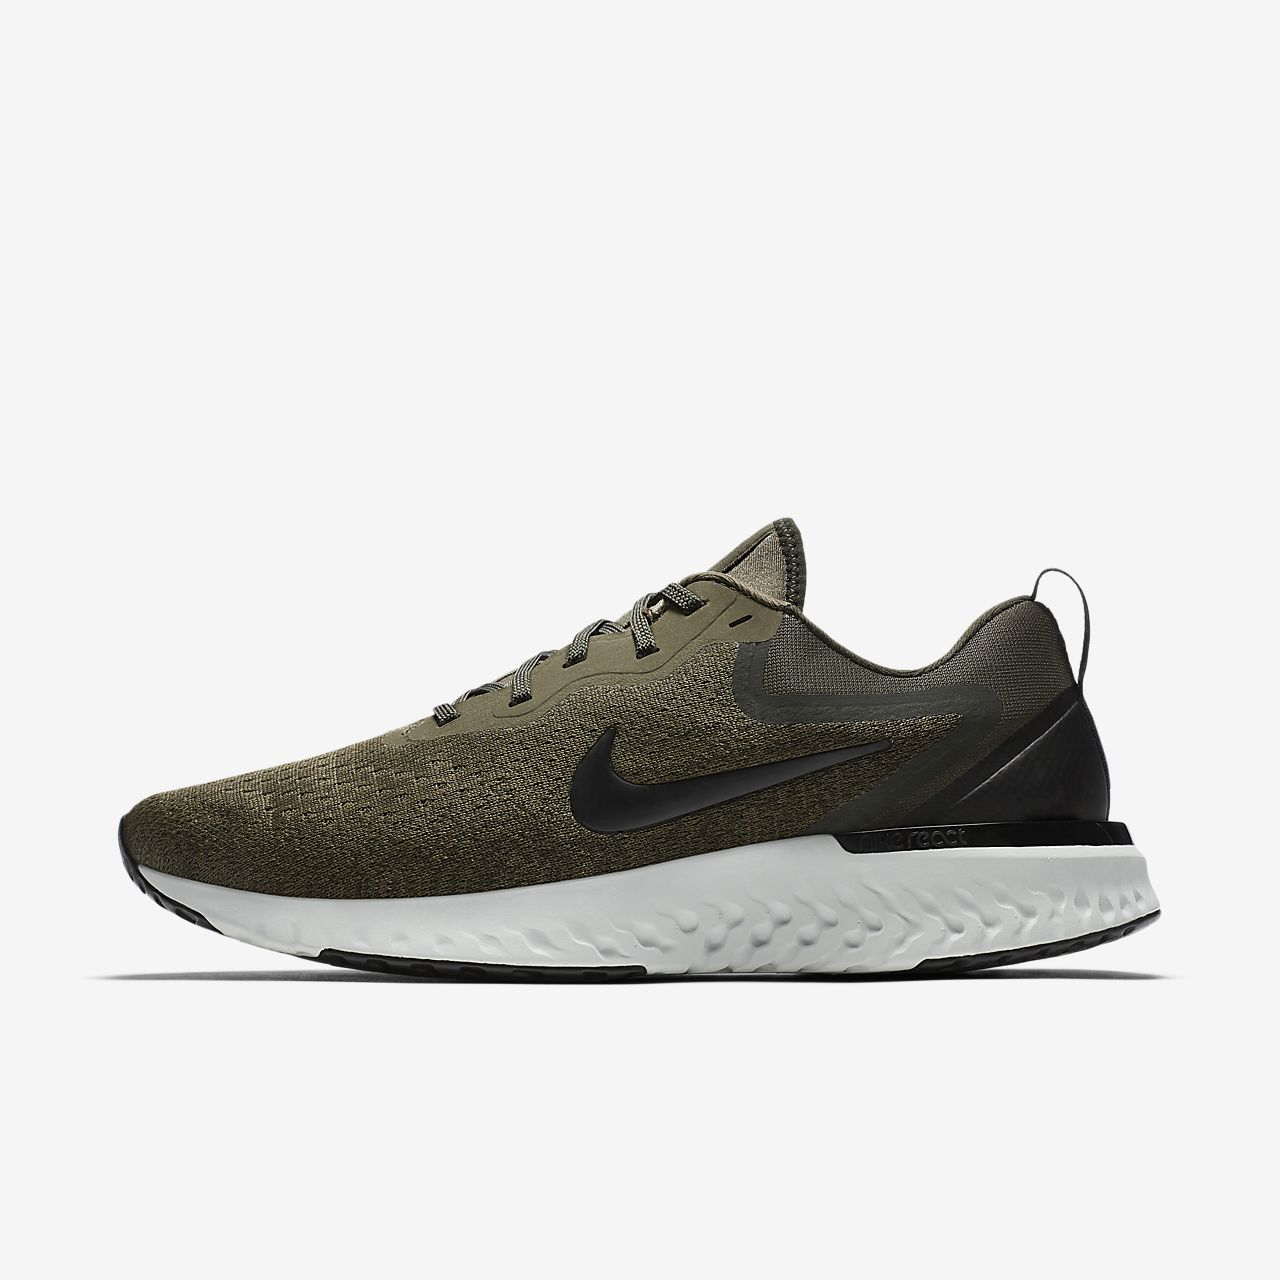 Nike Odyssey React Men's Running Shoe AO9819-200 MED OLIVE